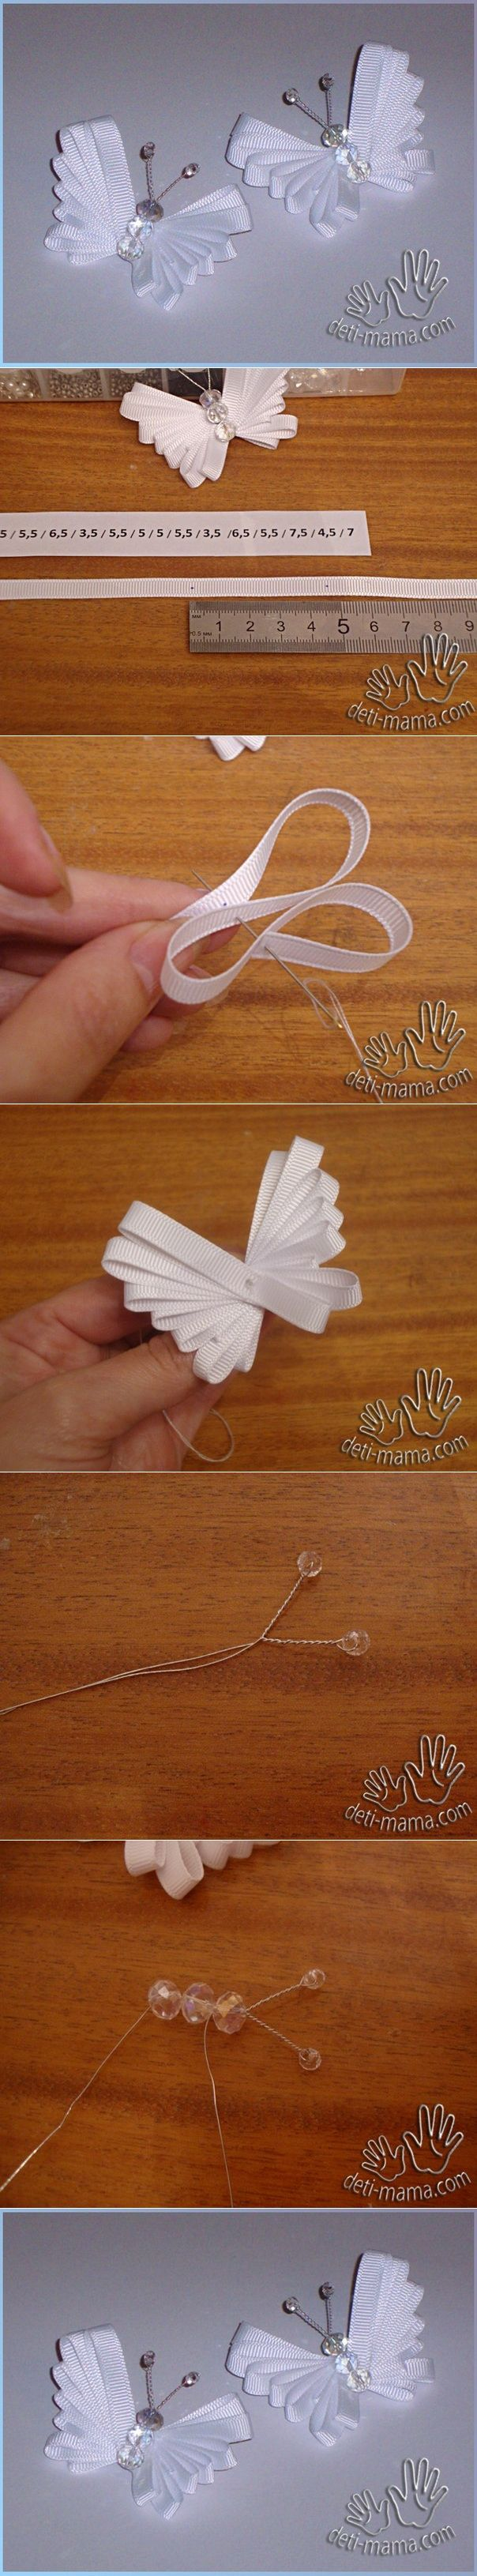 DIY Easy Ribbon Butterfly | www.FabArtDIY.com LIKE Us on Facebook ==> https://www.facebook.com/FabArtDIY